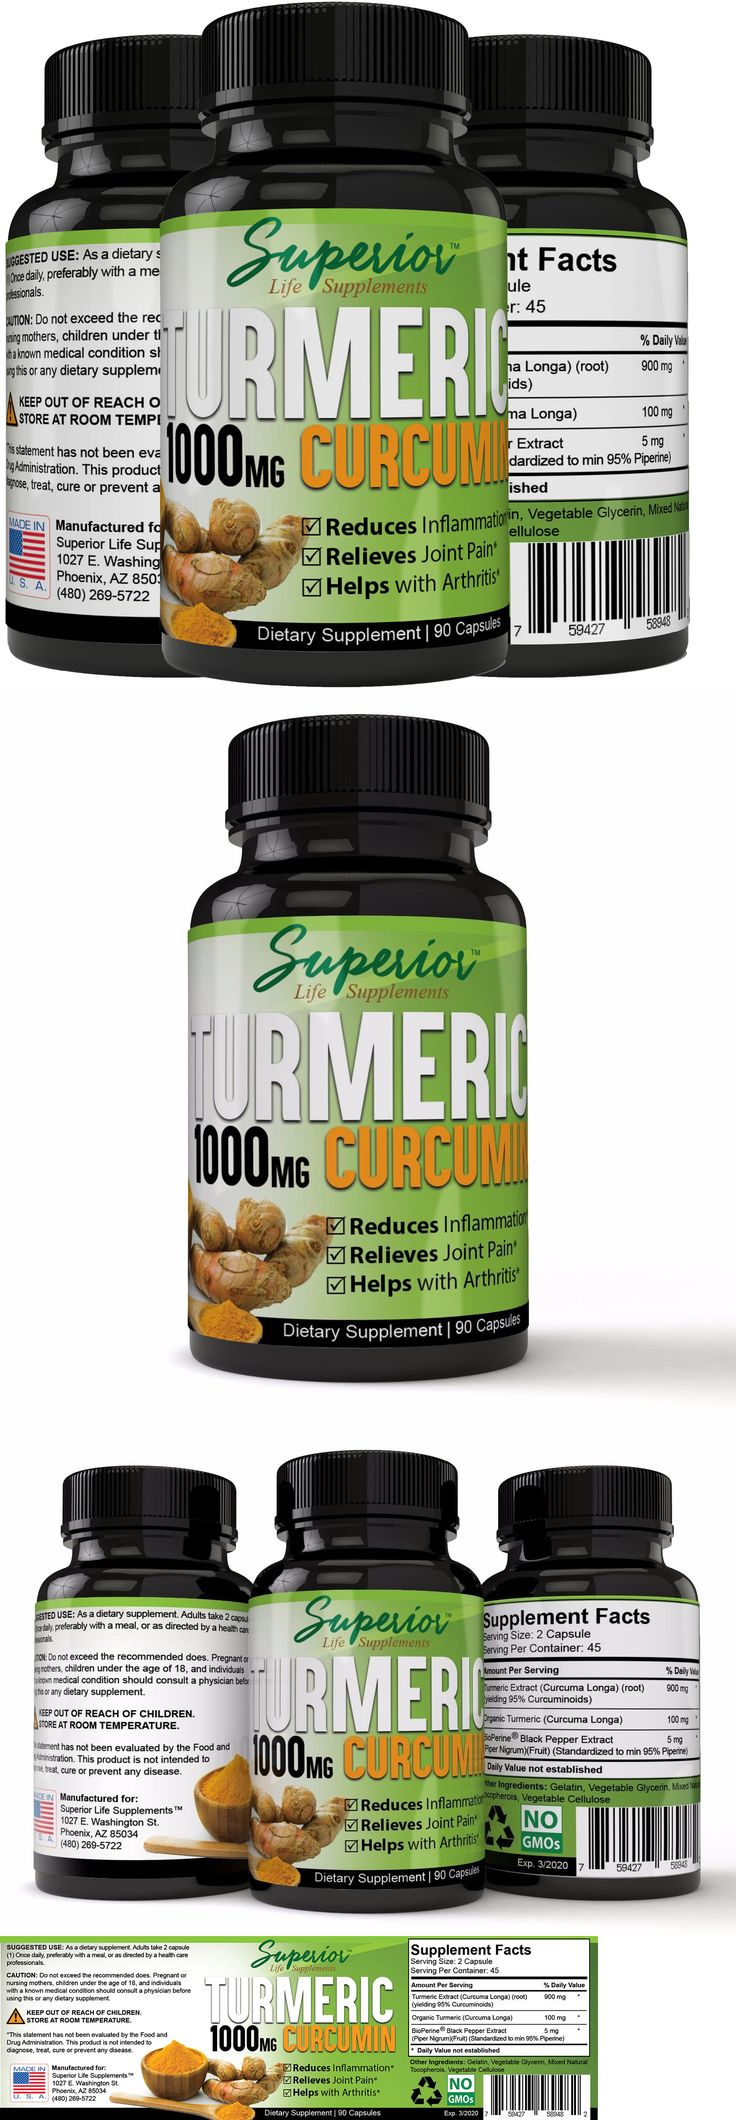 Herbs and Botanicals: Turmeric Curcumin Extract Supplement With Bioperine 1000Mg Serving 100% Natural -> BUY IT NOW ONLY: $54.95 on eBay!